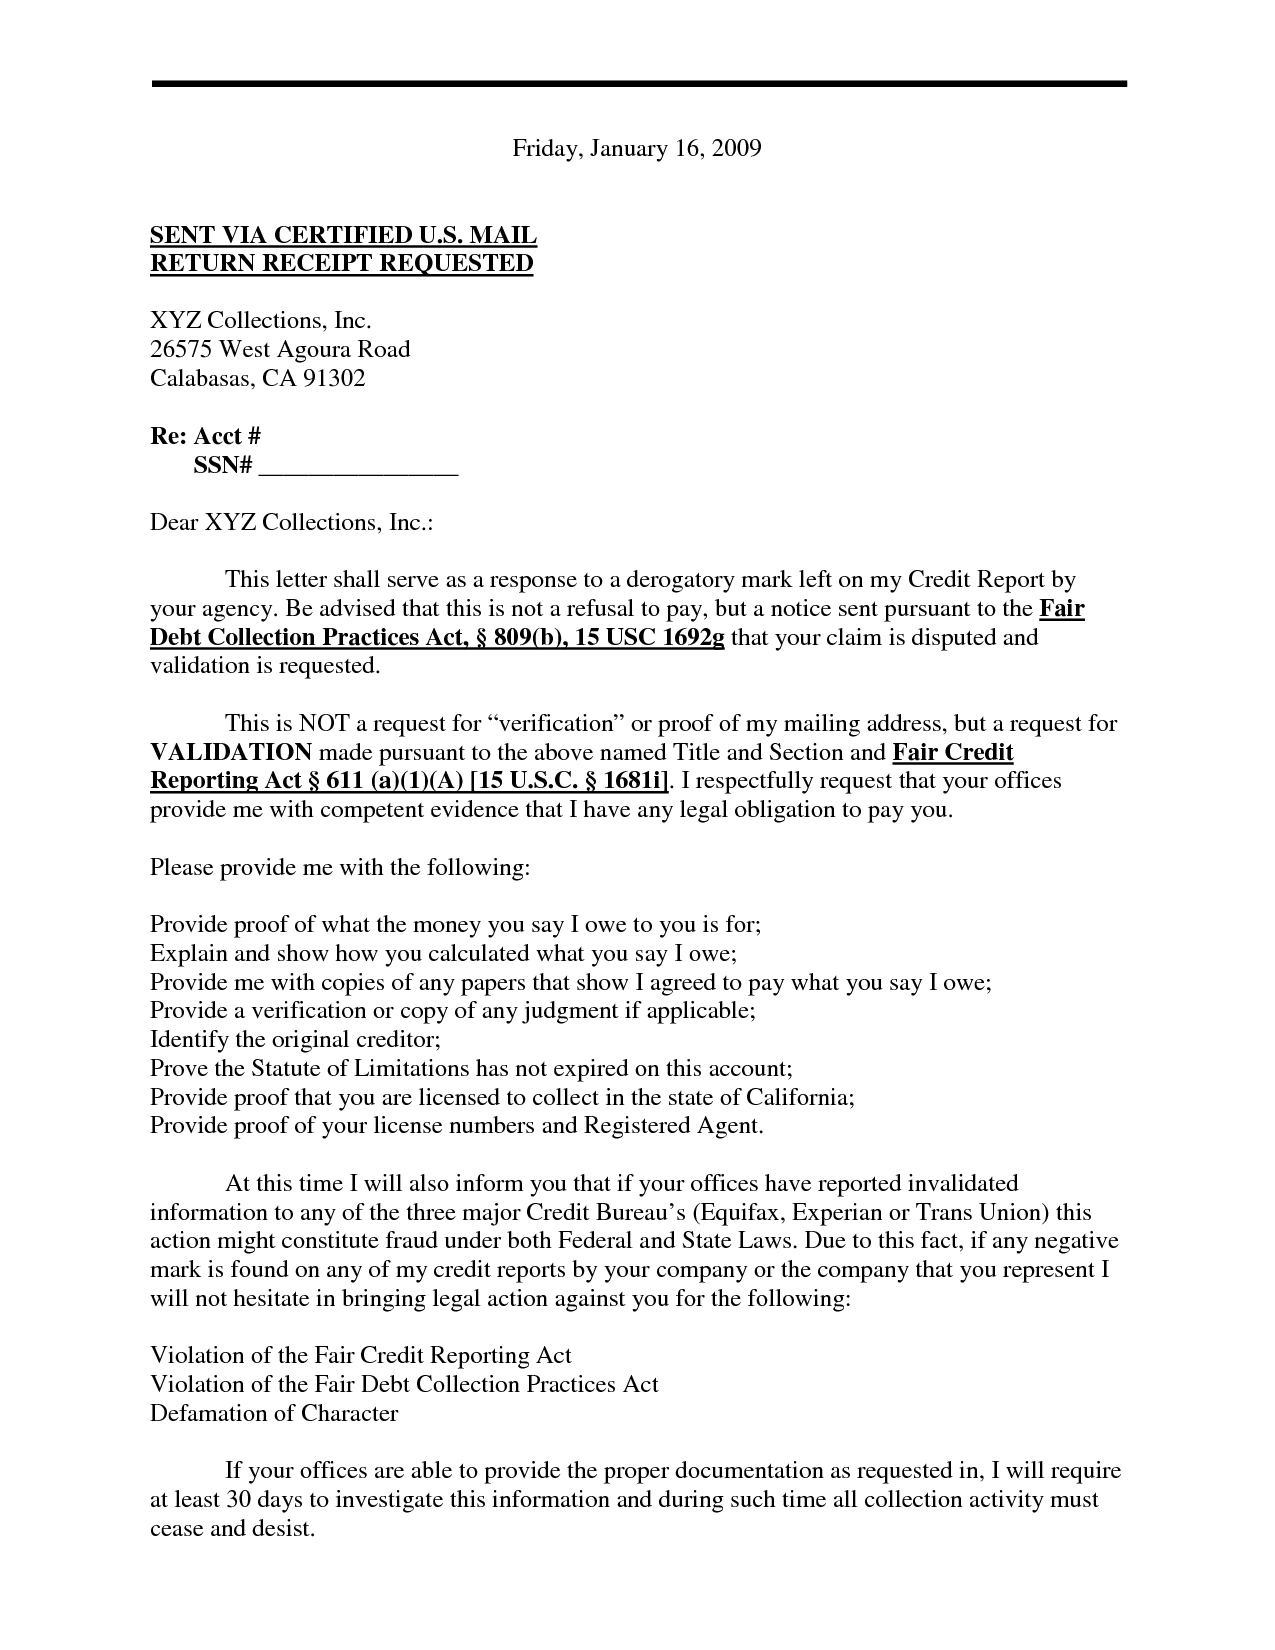 Debt Harassment Template Letter - Debt Validation Letter